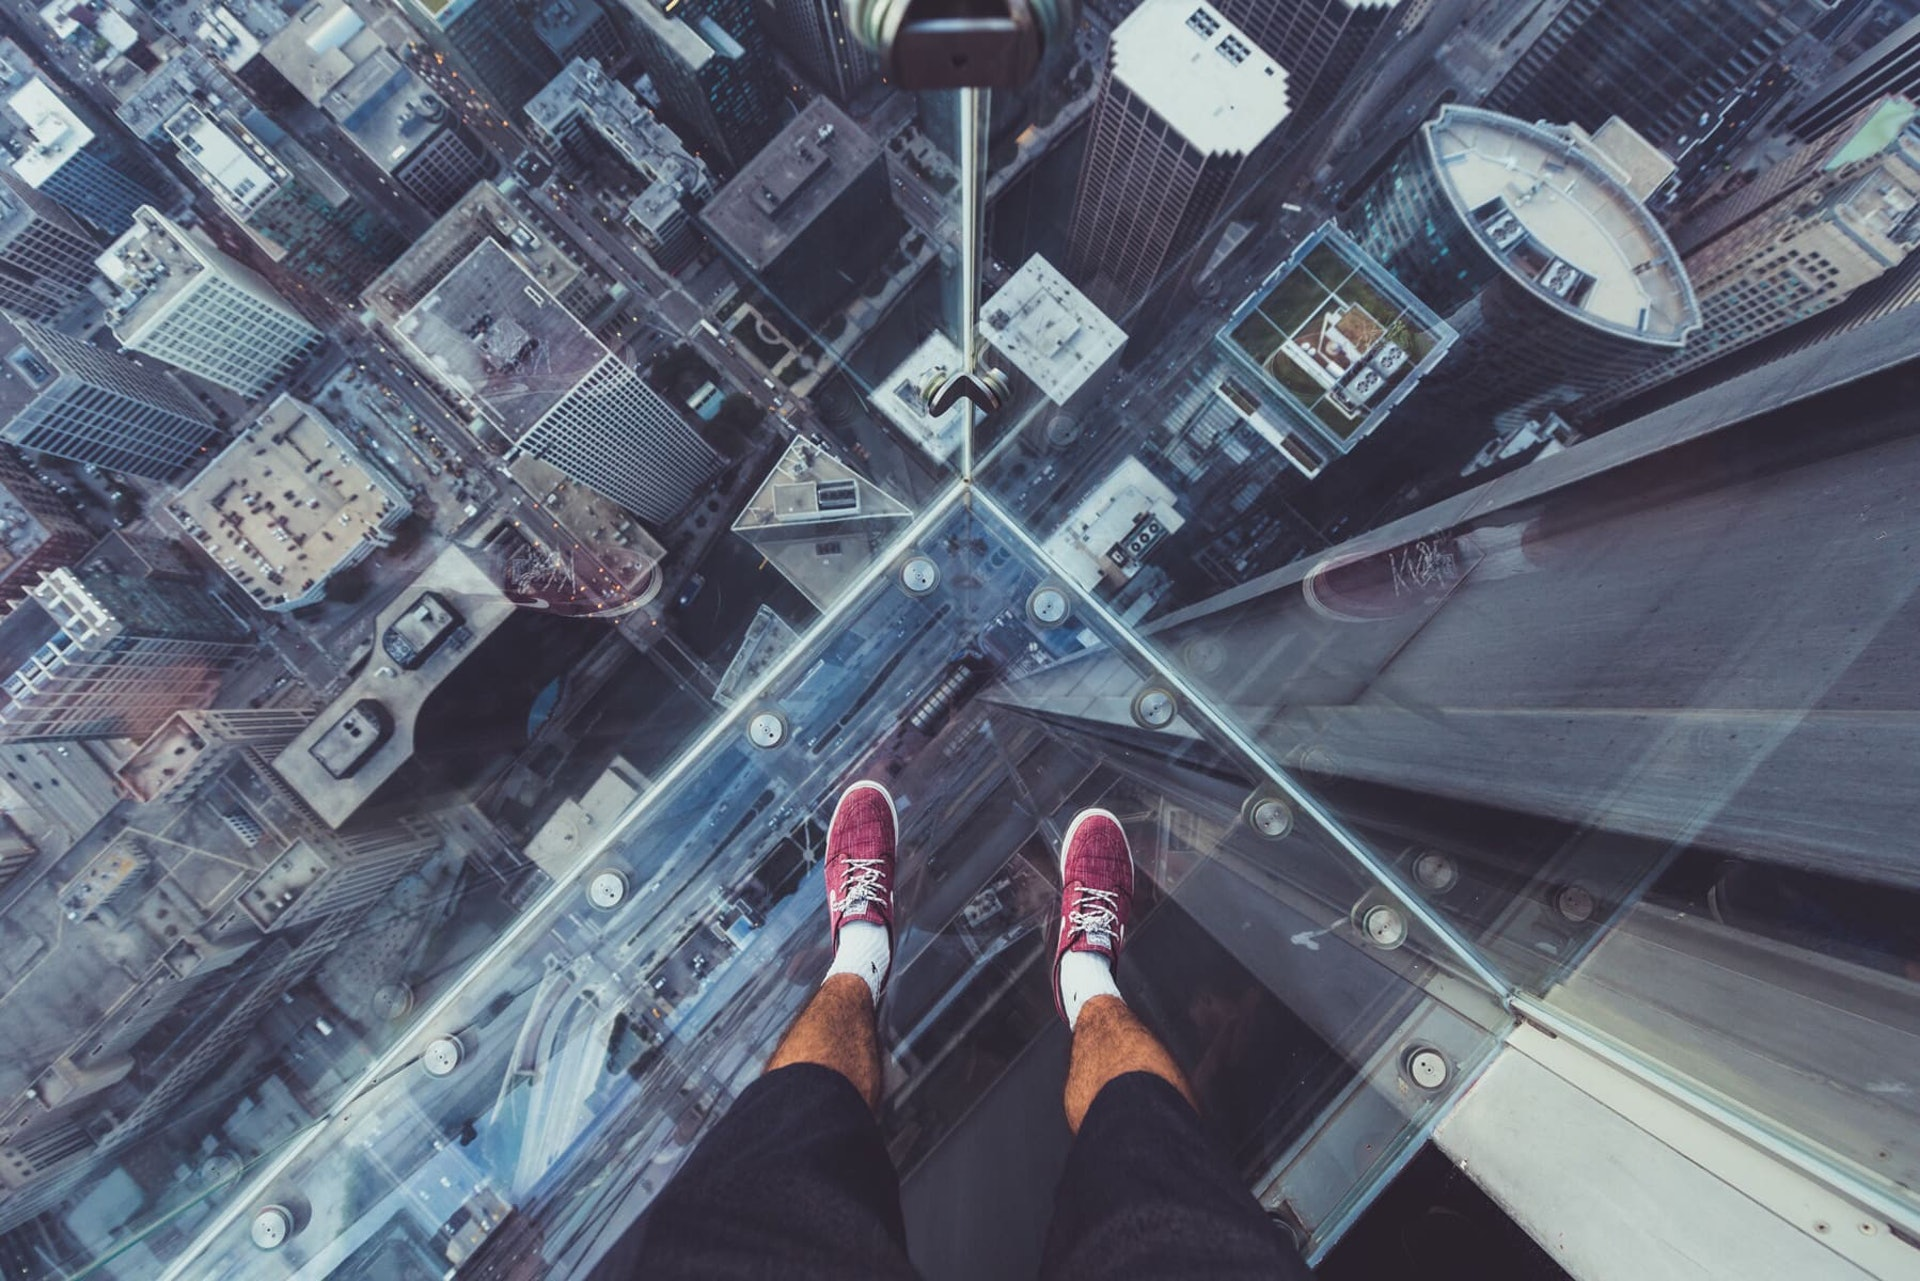 Looking down from SkyDeck of Willis Tower, Chicago